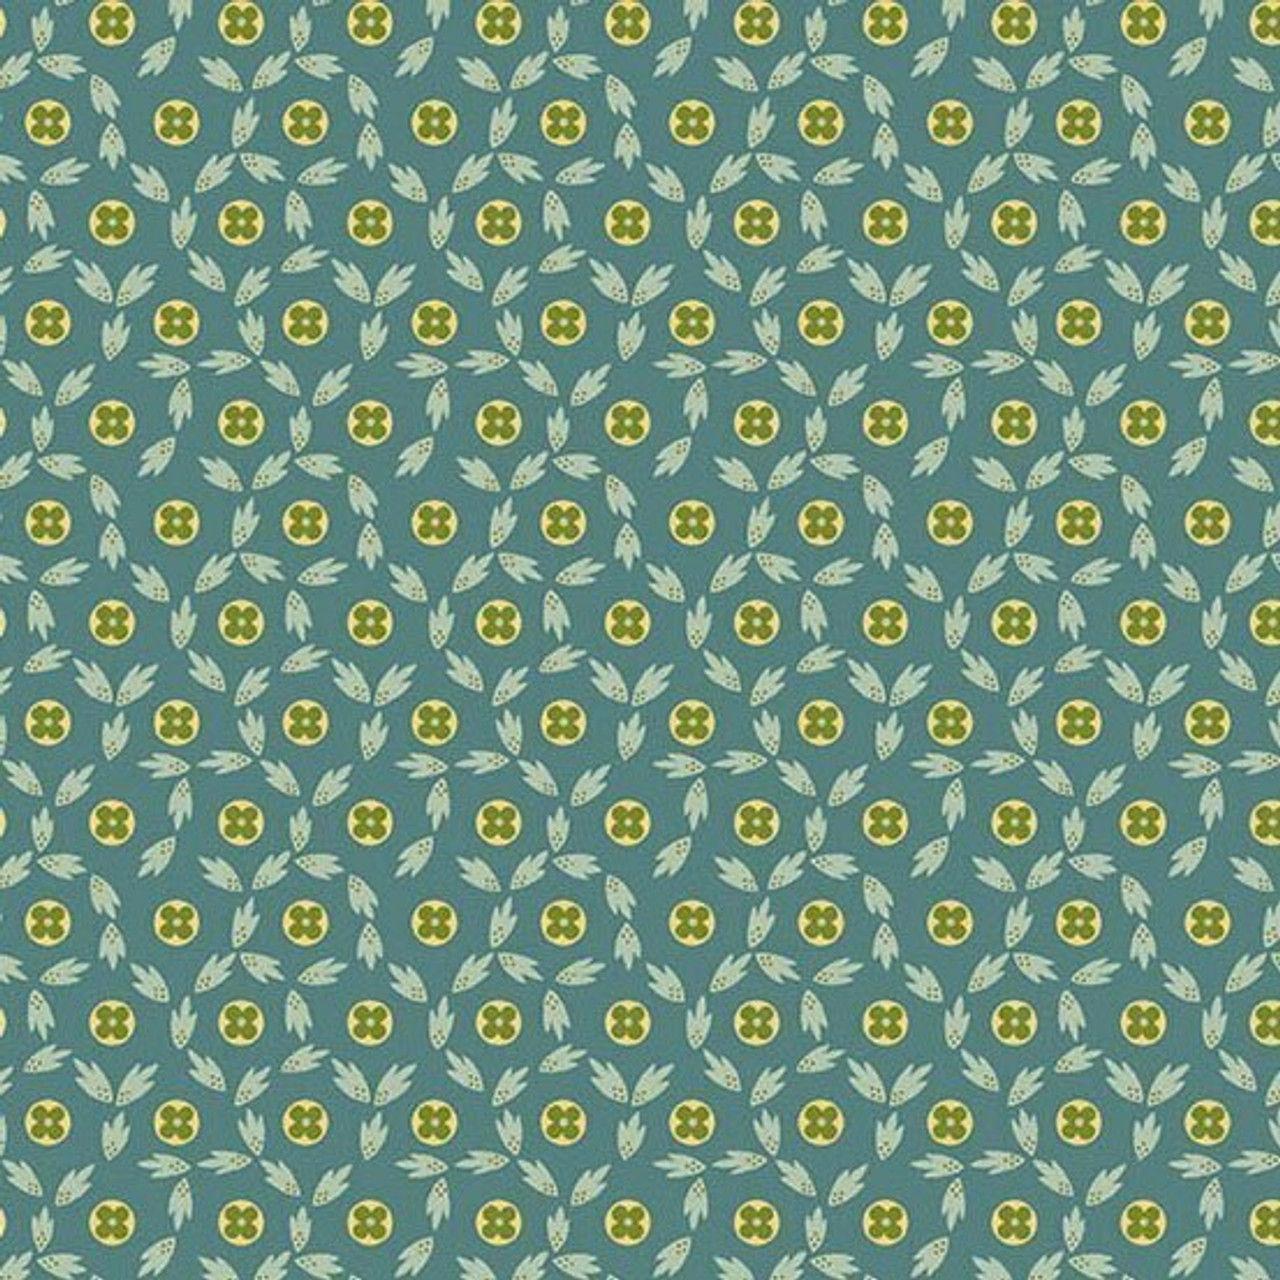 Maling Road: Button Flowers - Blue